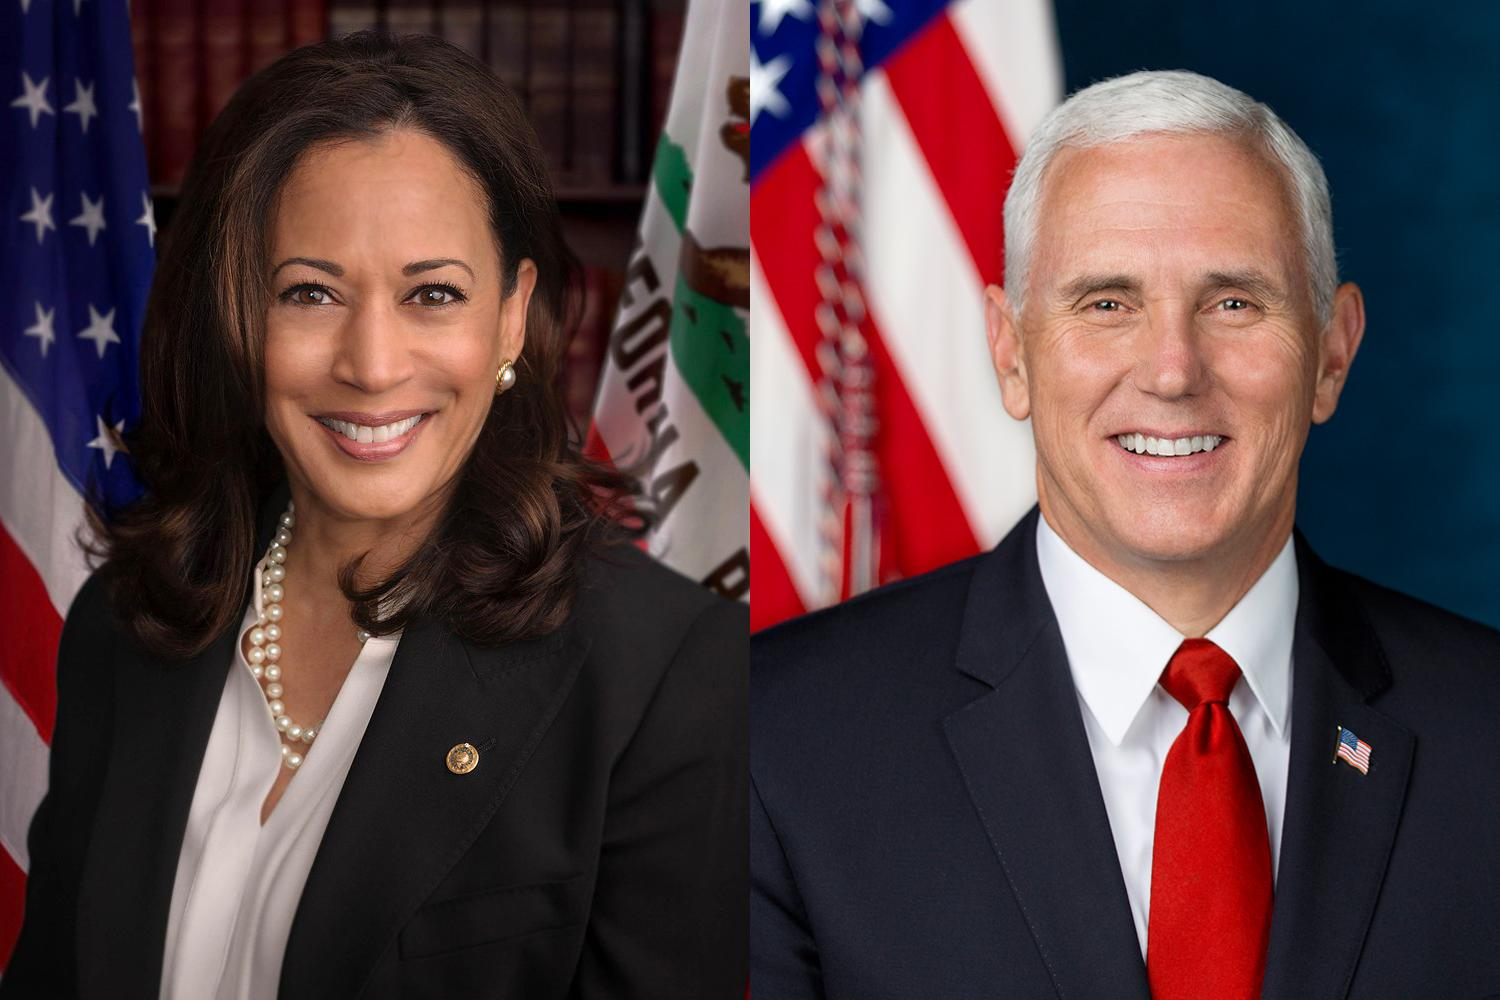 What Do Mike Pence and Kamala Harris Stand For? Part III